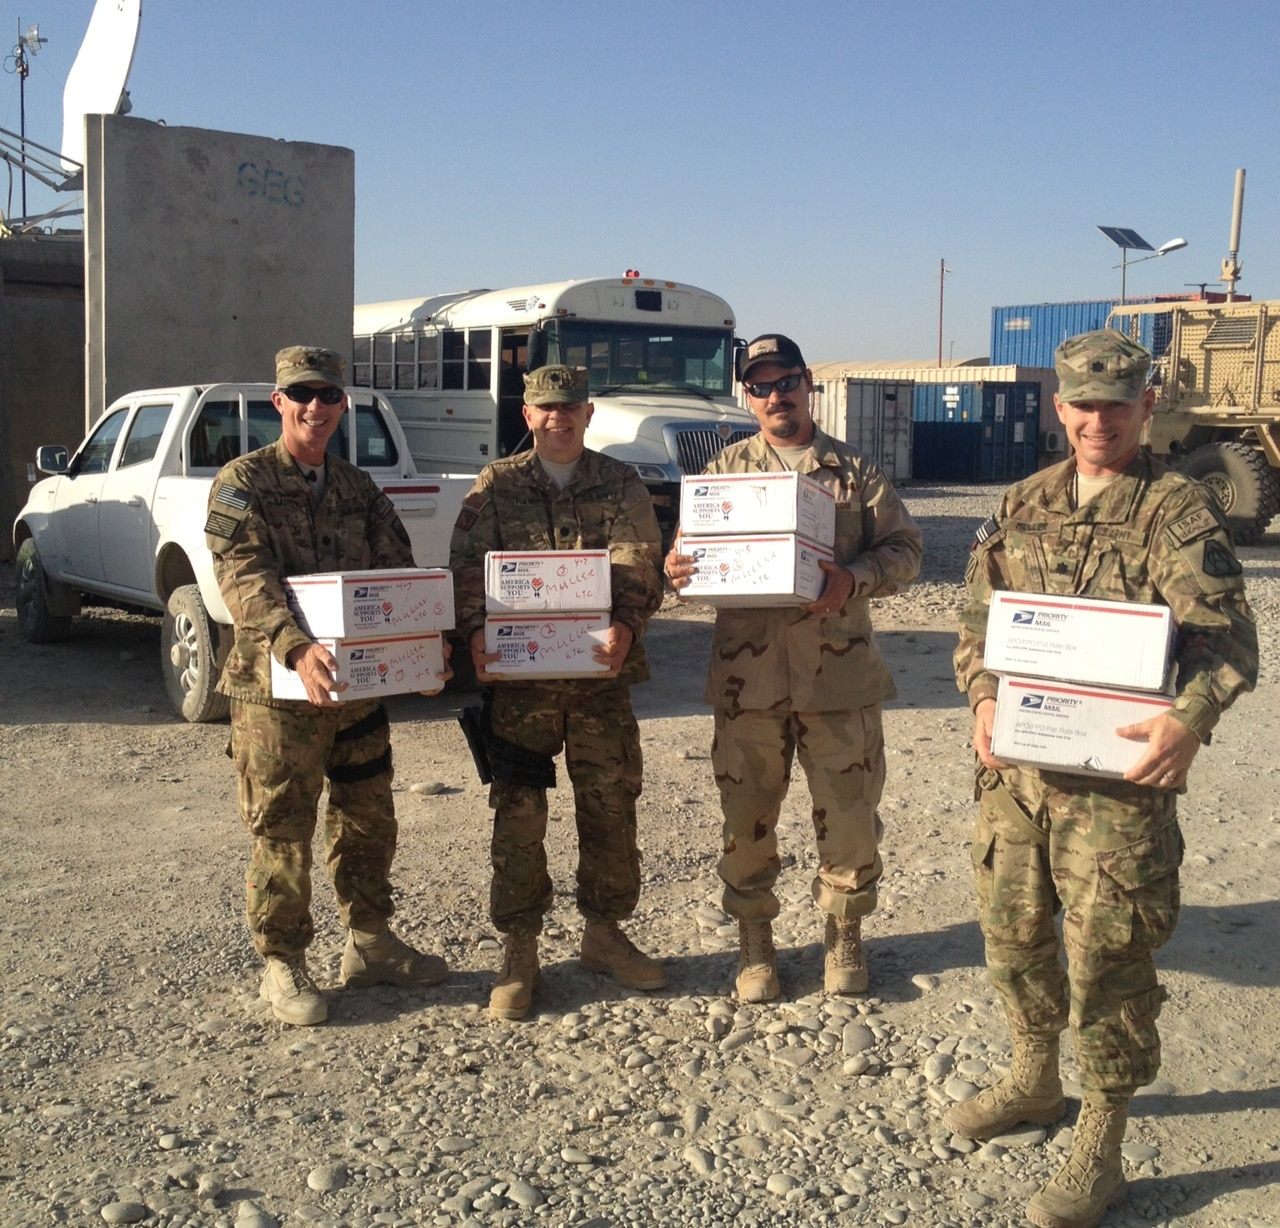 Soldiers receive care packages from Freedom Alliance